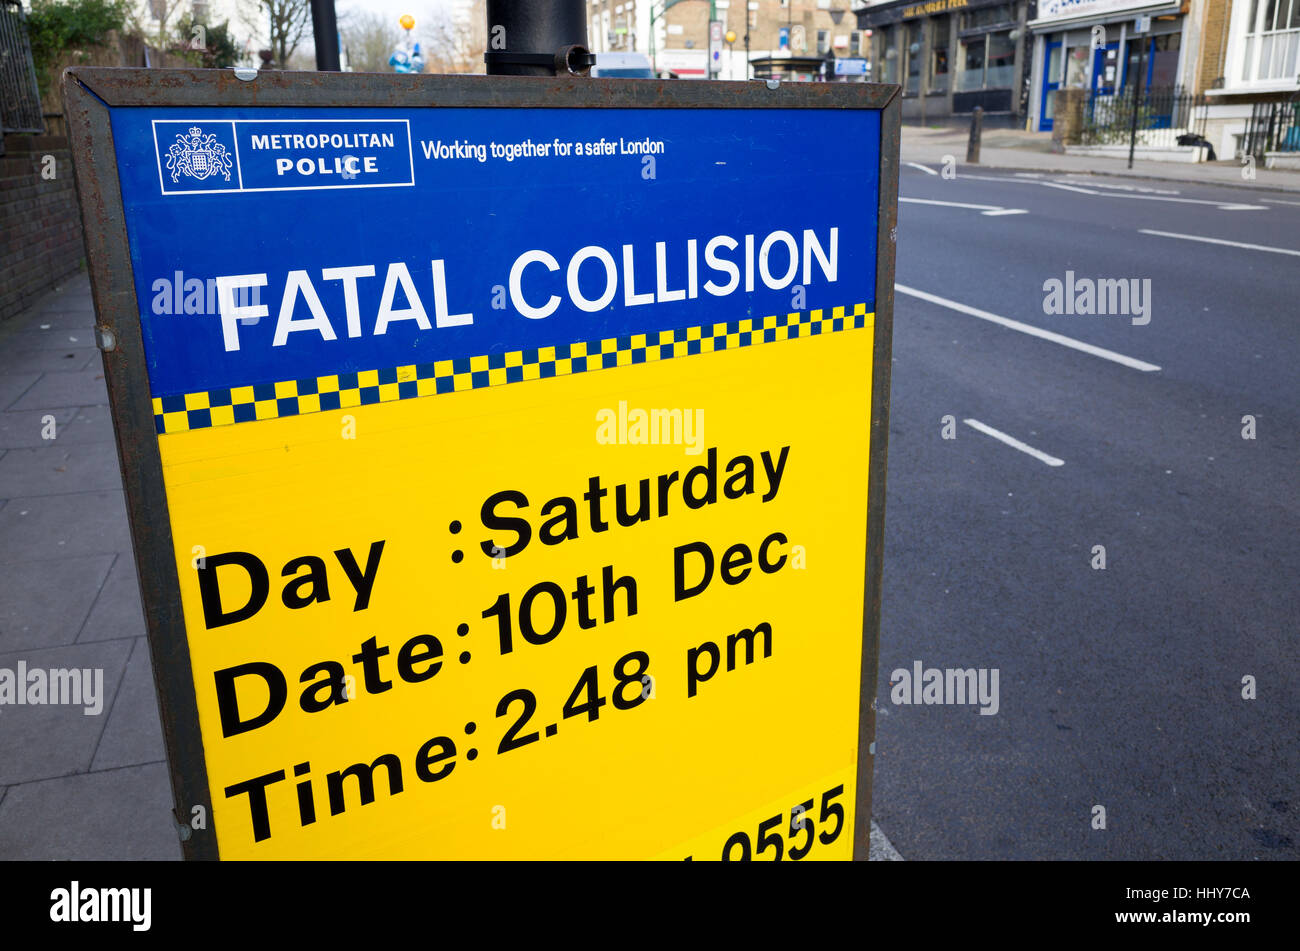 Police Fatal Collision sign beside where a teenager was killed in a road traffic accident, London, England, UK - Stock Image